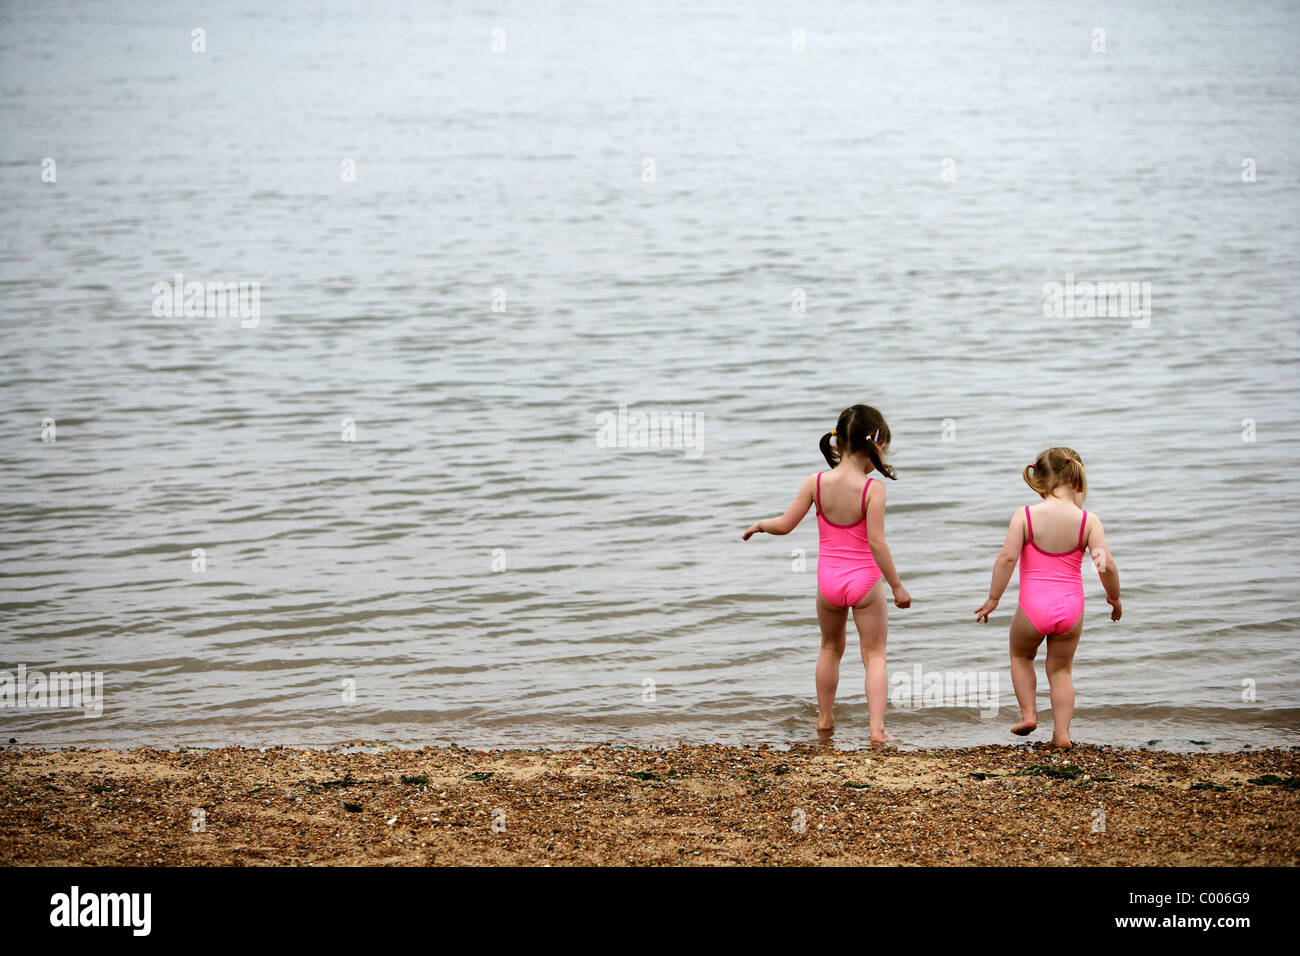 Sisters In Matching Pink Bathing Suits Playing On Beach - Stock Image